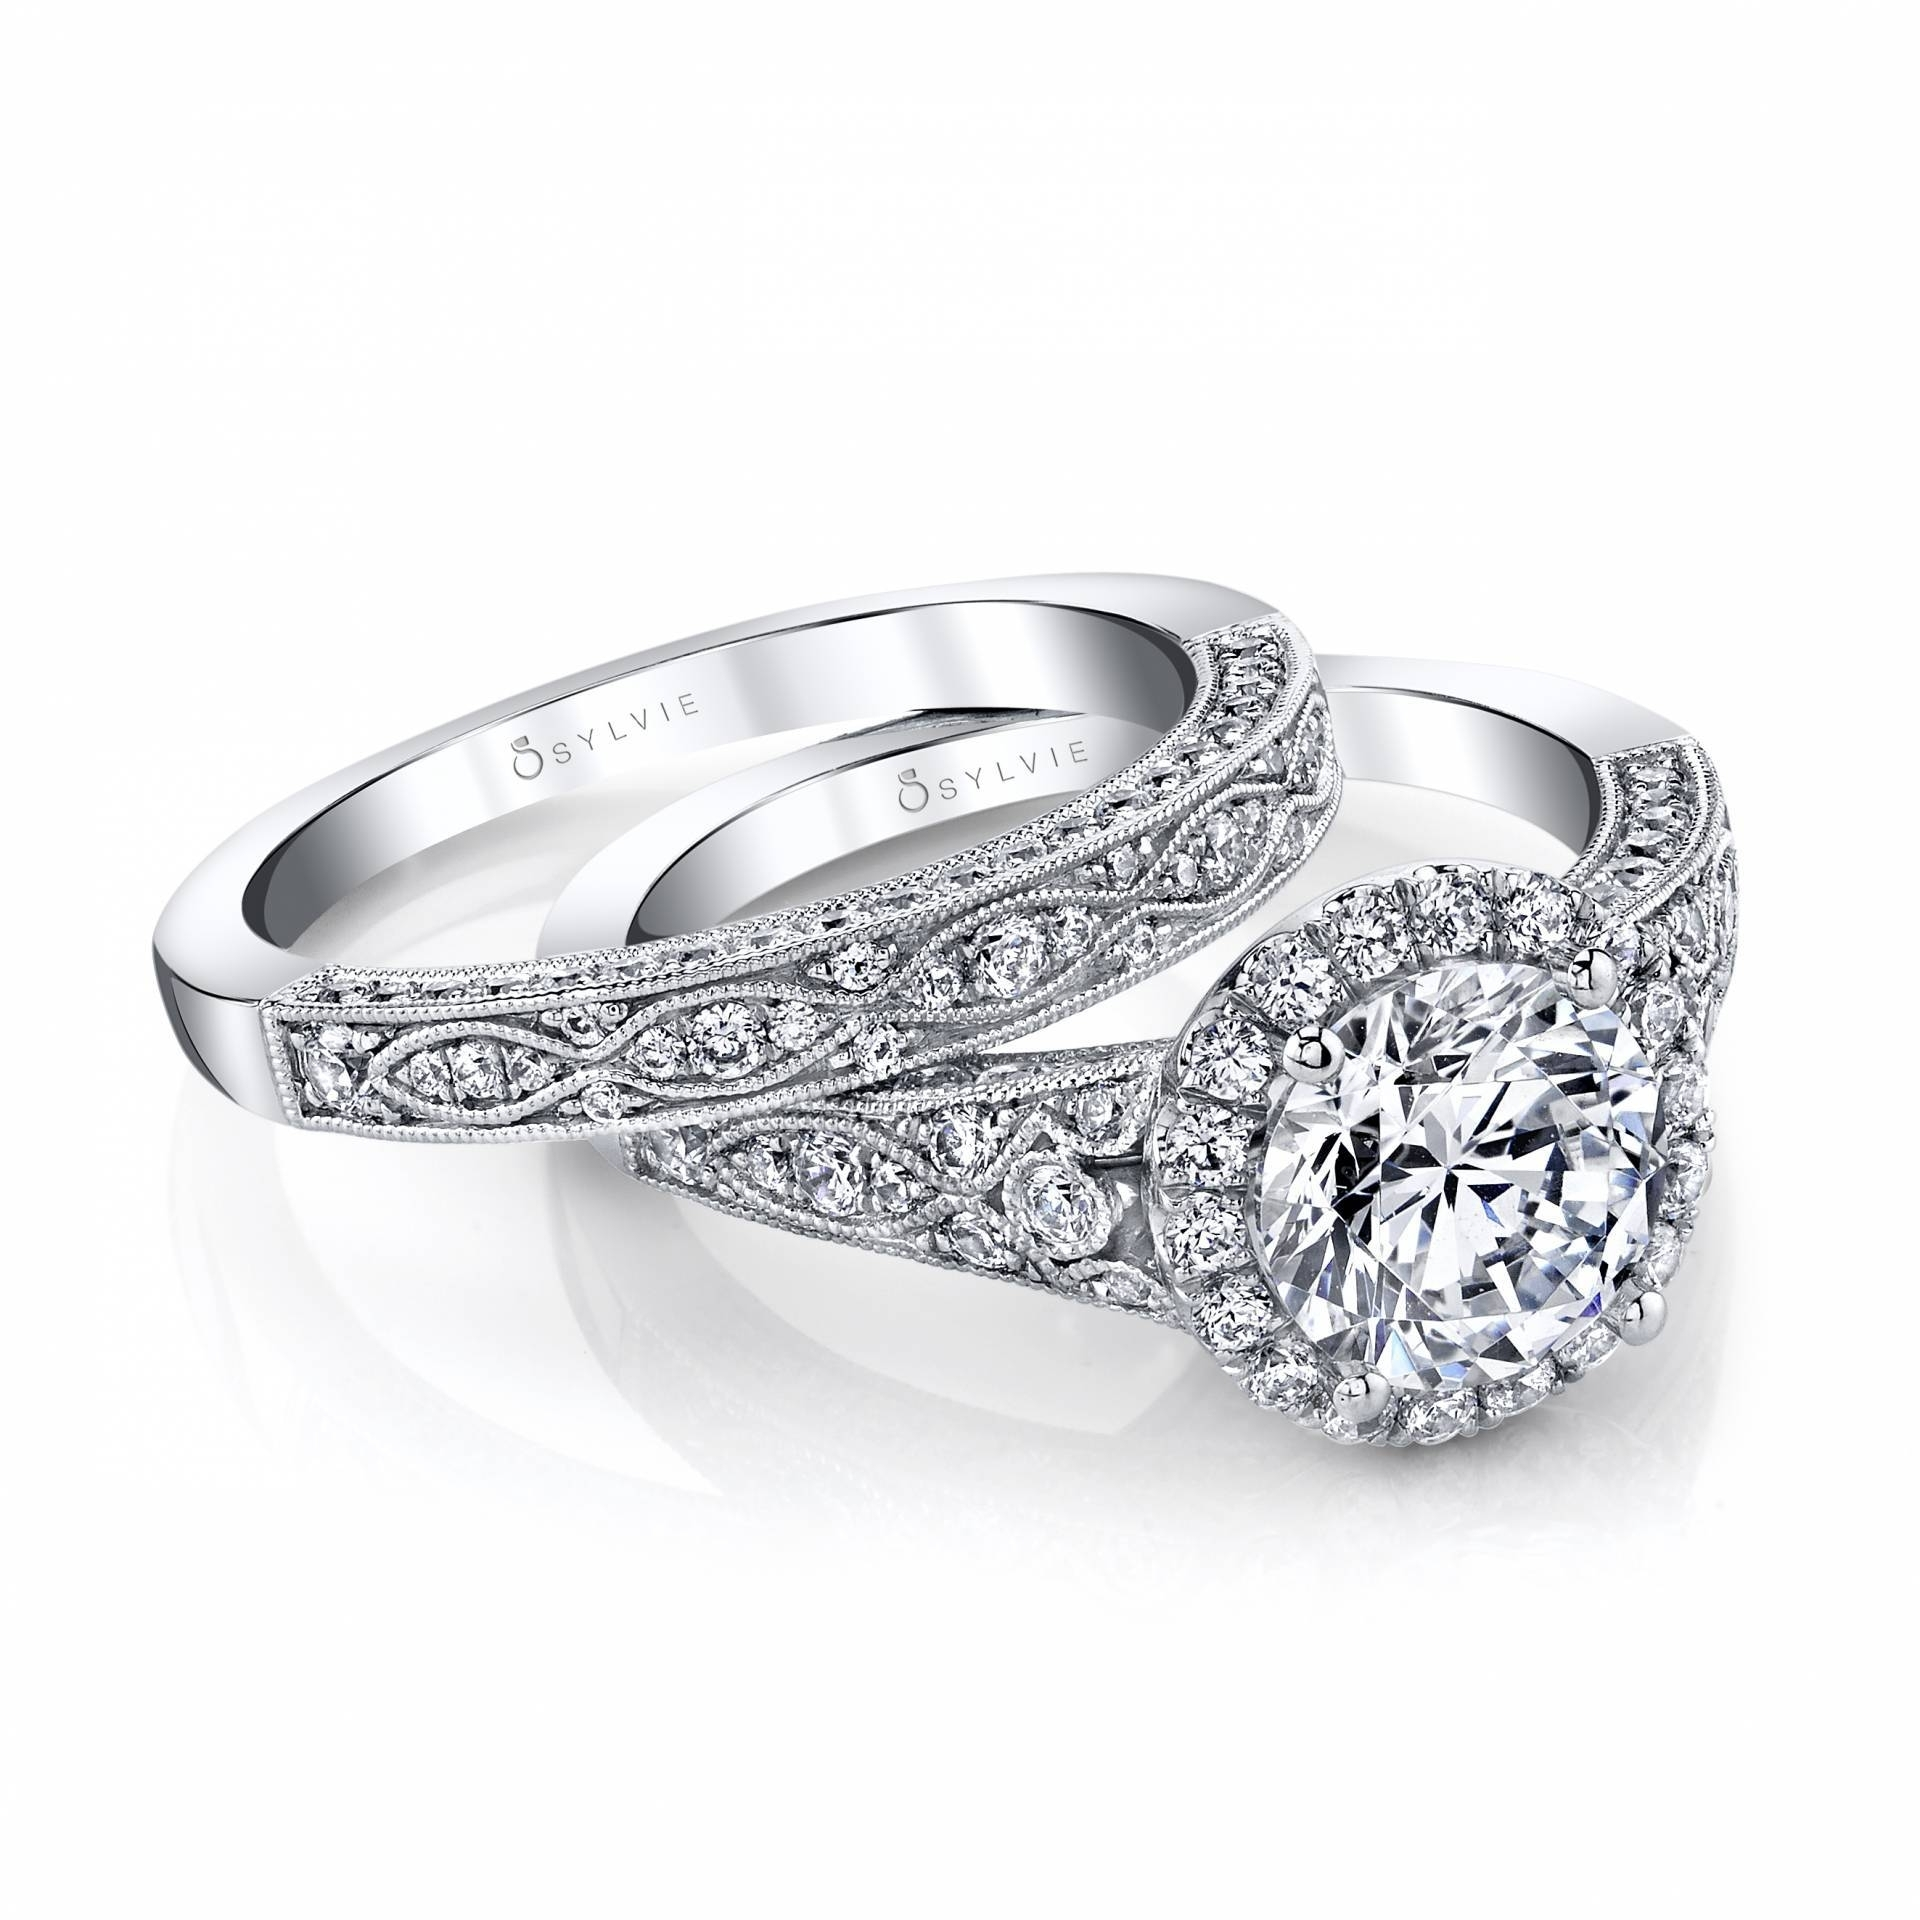 Vintage Engagement Rings | Antique Engagement Rings In Current Vintage Style Diamond Anniversary Rings (View 13 of 15)